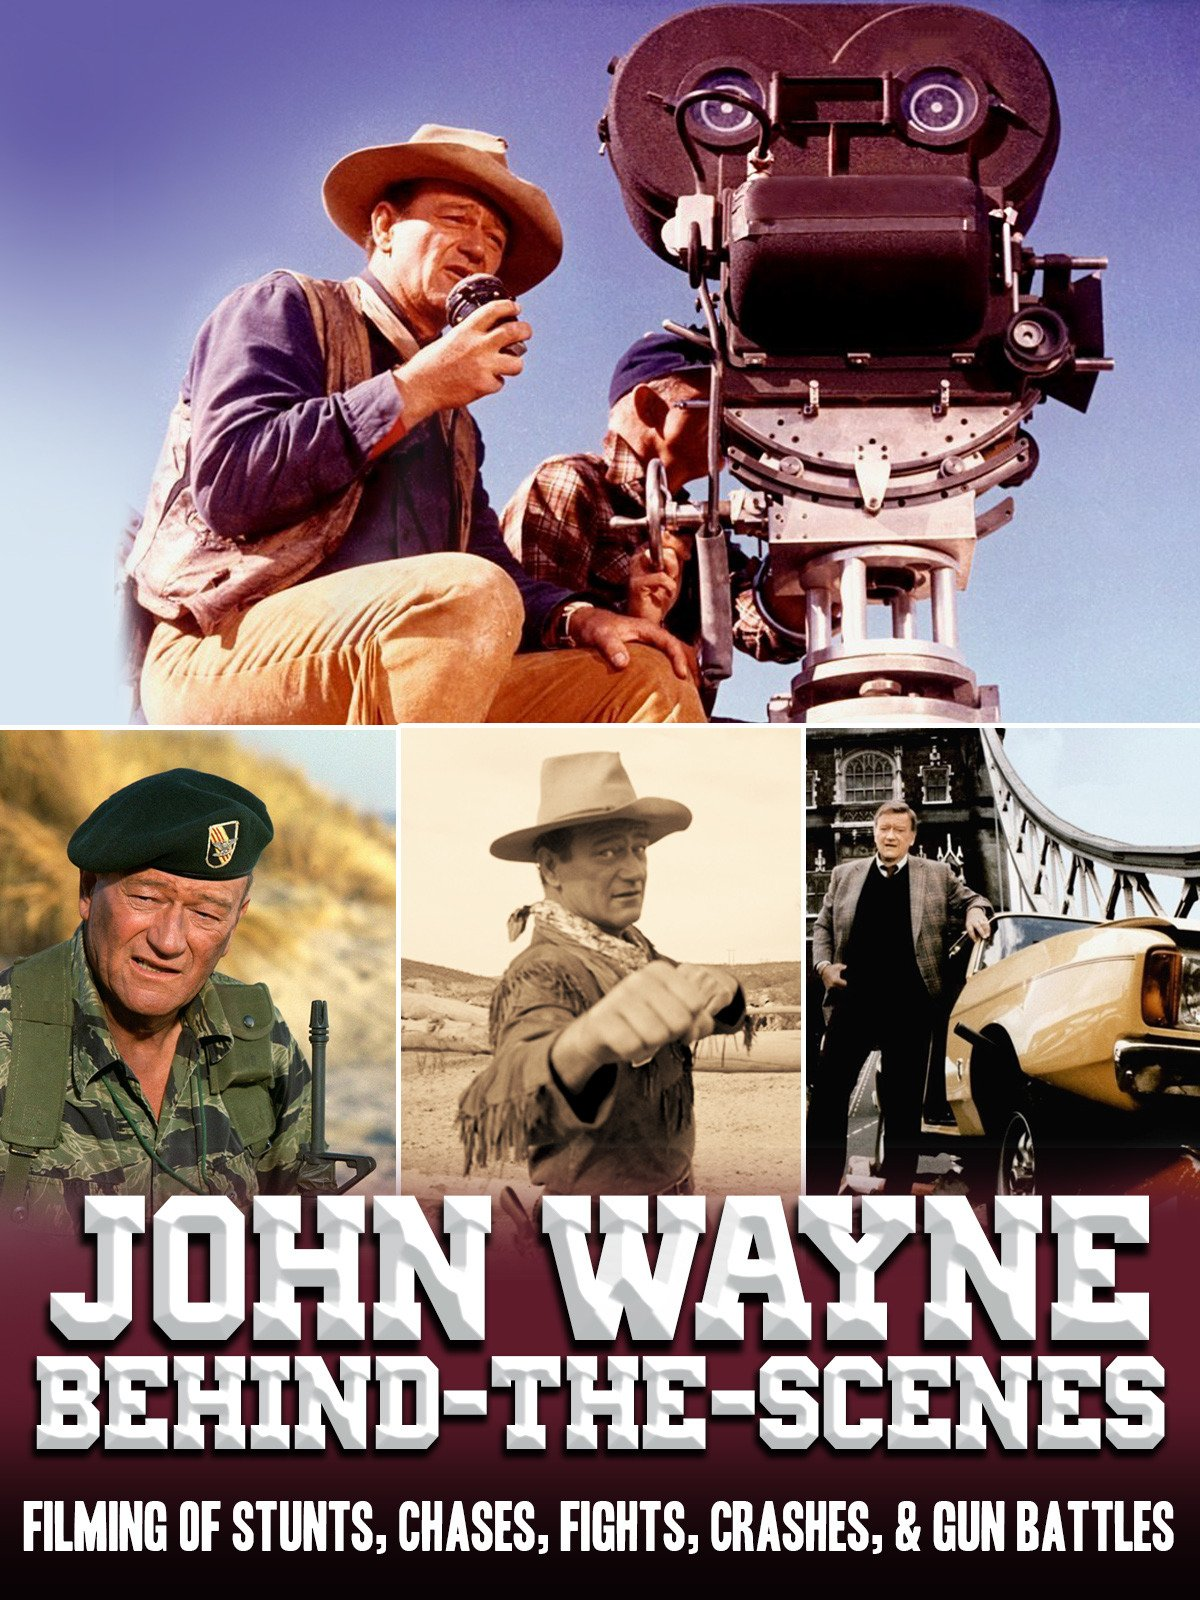 John Wayne Behind-the-Scenes - Filming Of Stunts, Chases, Fights, Crashes, Gun Battles